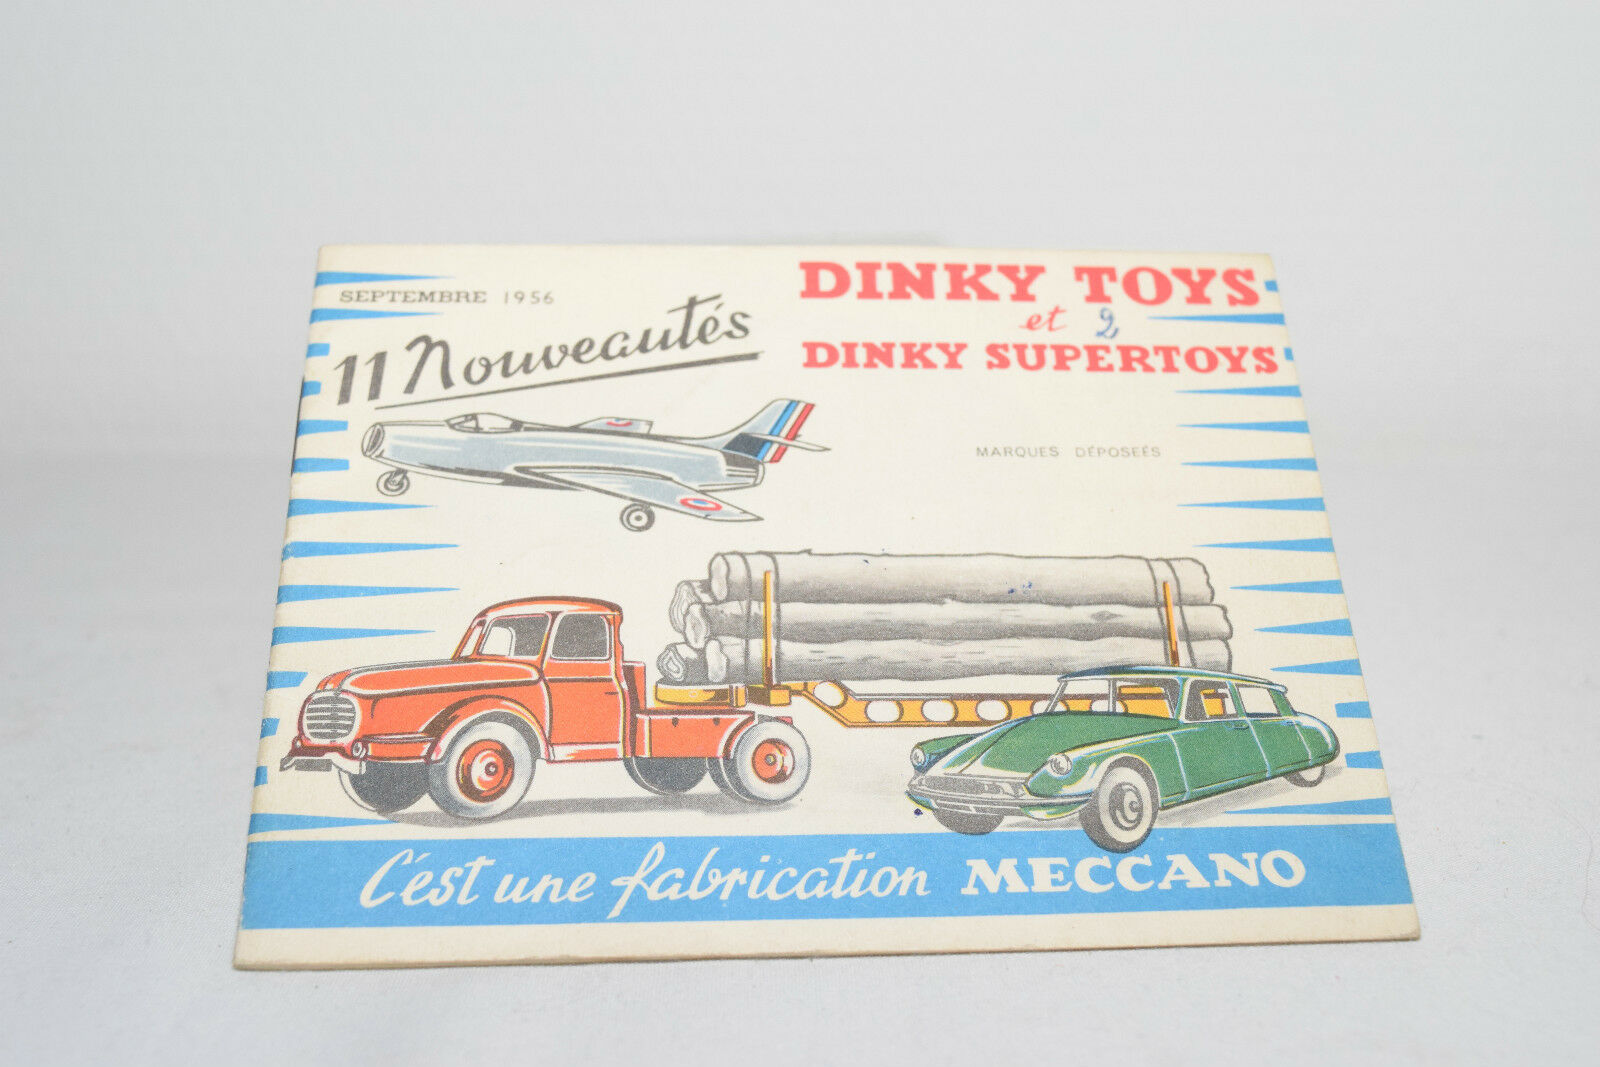 DINKY TOYS CATALOGUE CATALOG SEPTEMBRE 1956 FRENCH EXCELLENT CONDITION